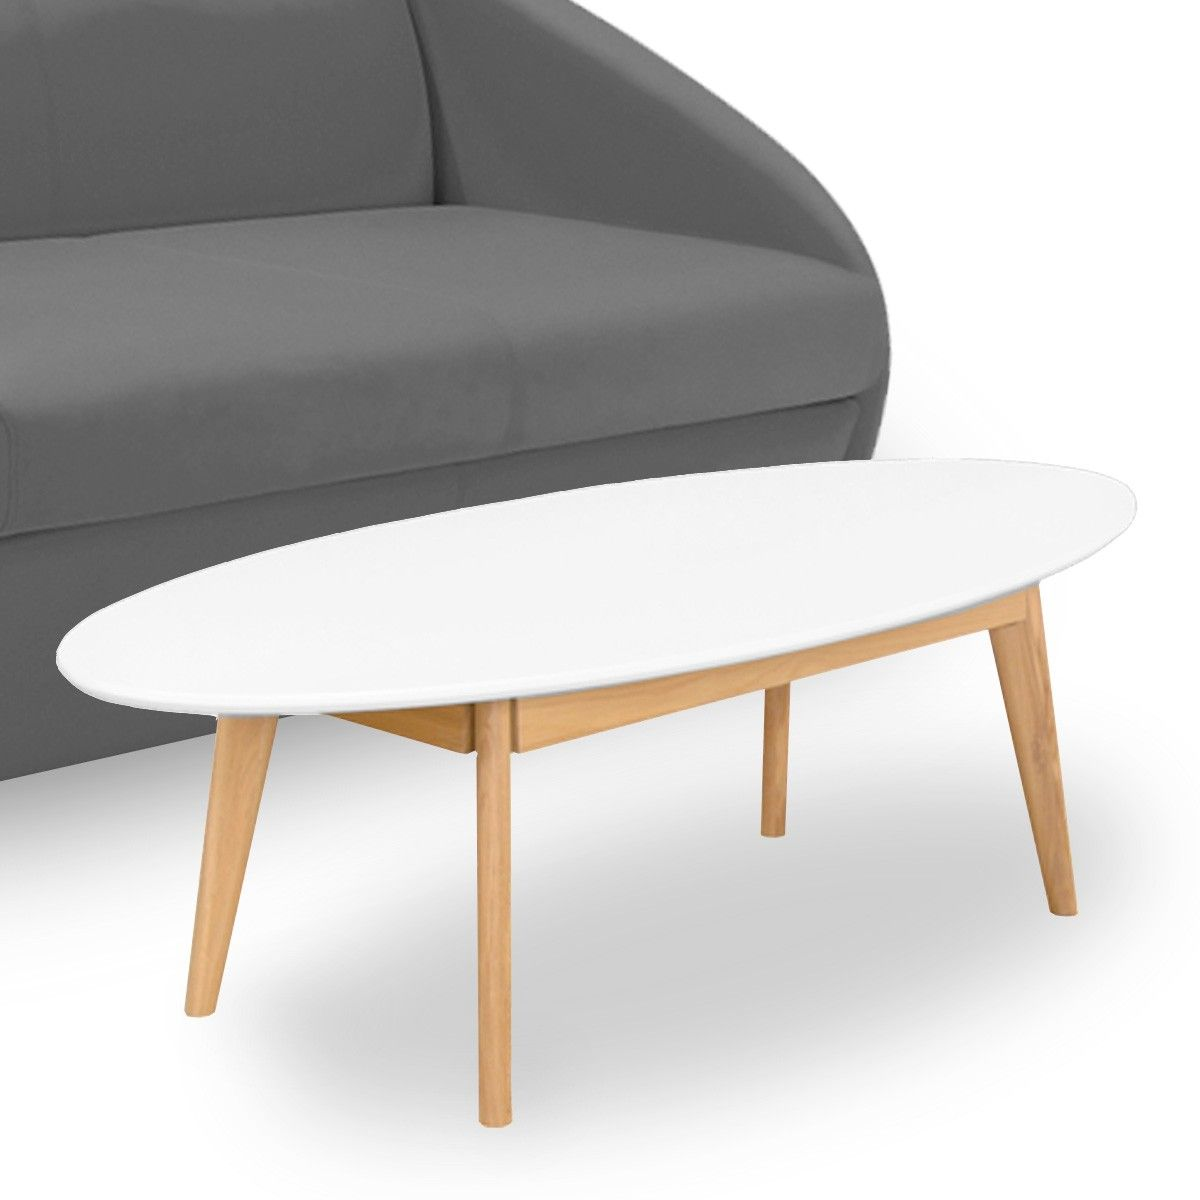 Blanche Basse Table Ovale Table Ovale Scandinave Basse HDbW2Ie9EY